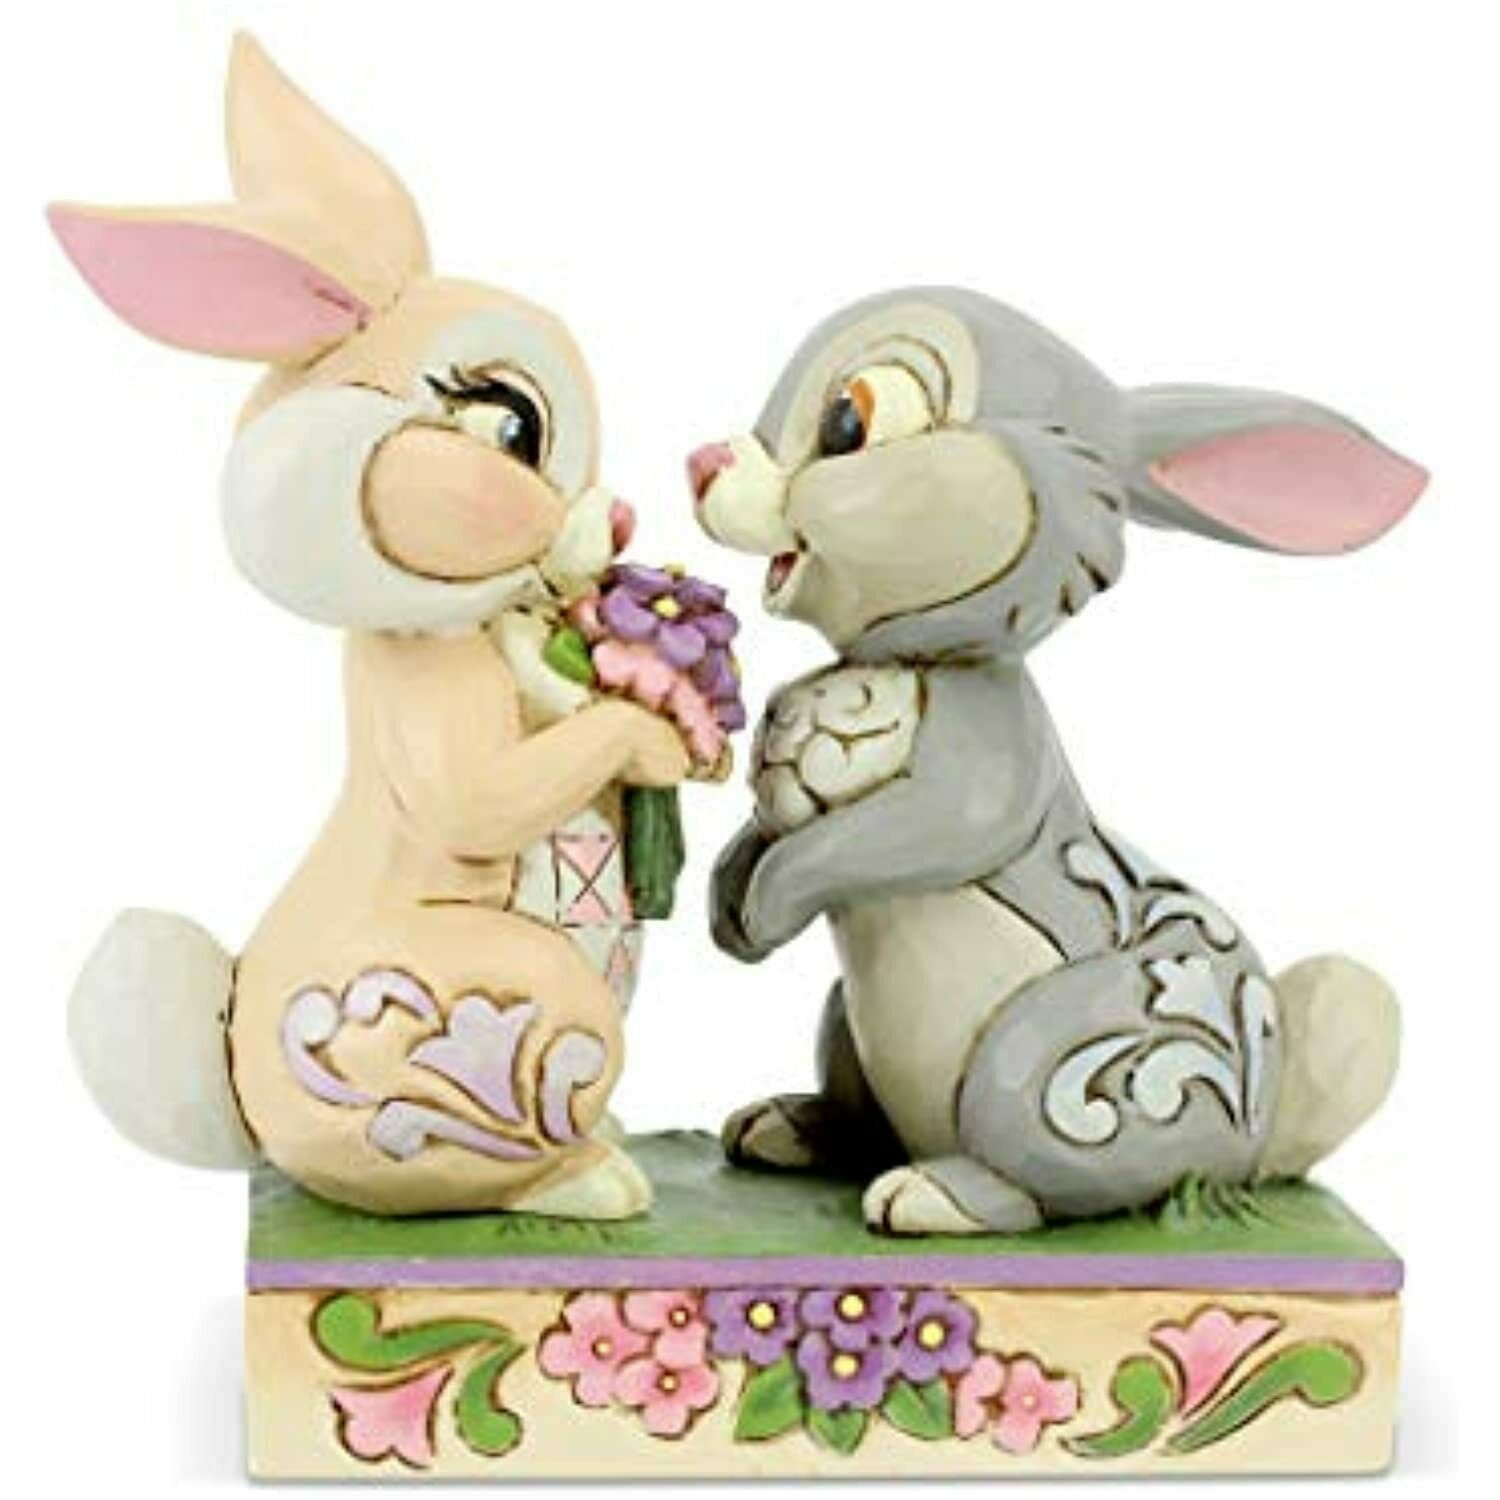 Jim Shore 6005963 Bunny Bouquet Thumper And Blossom 2020 Disney Bambi For Sale Online Ebay